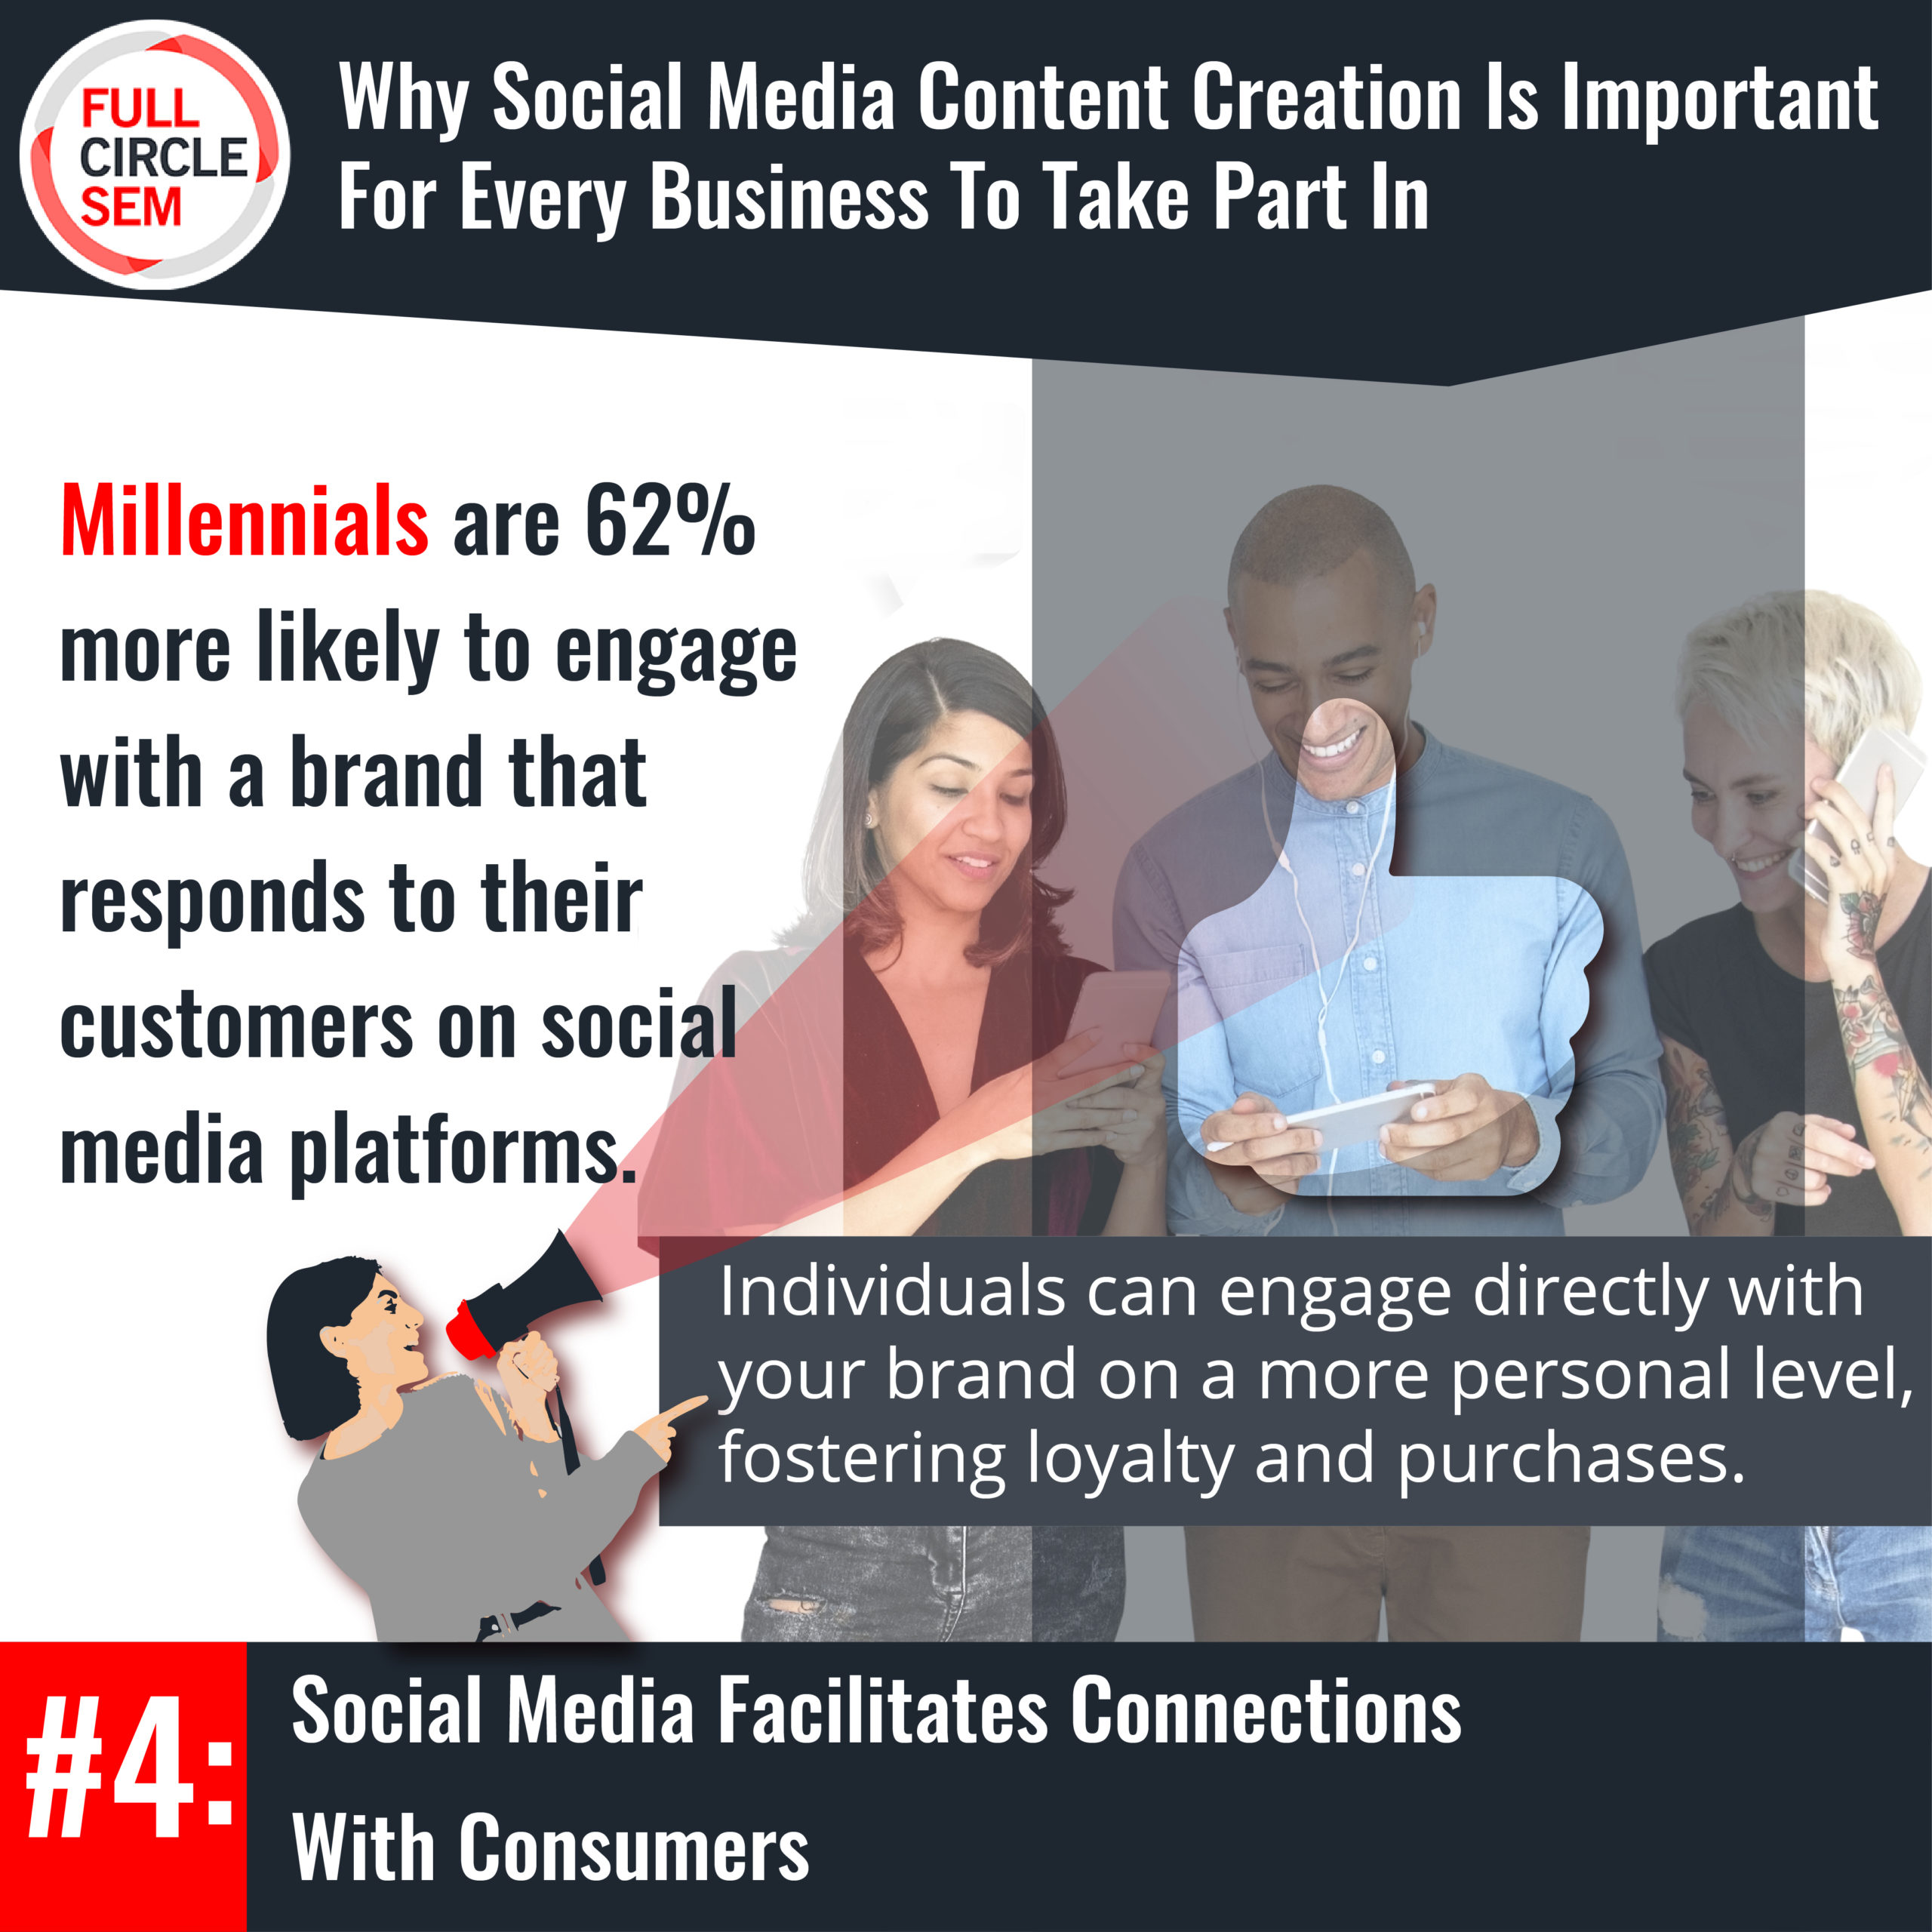 curate connection with customers using social media